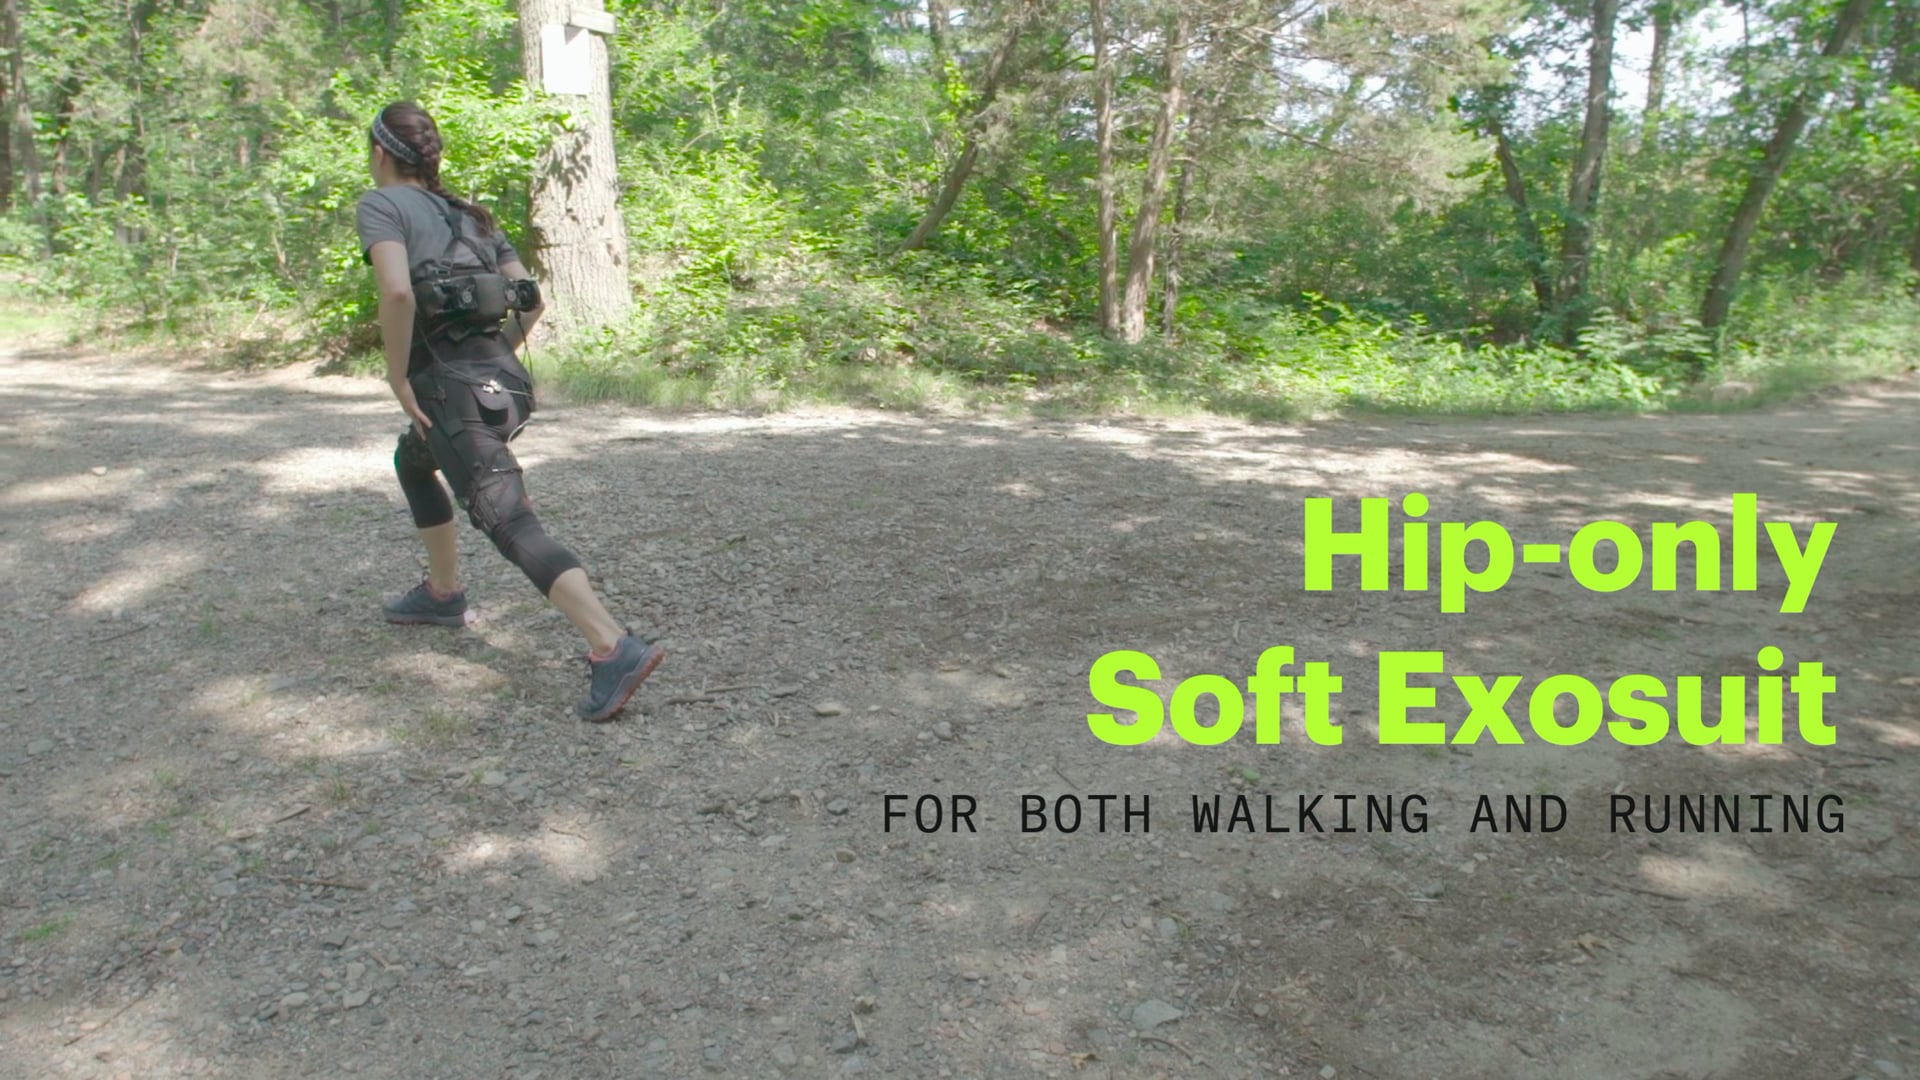 Hip-only Soft Exosuit for both Walking and Running